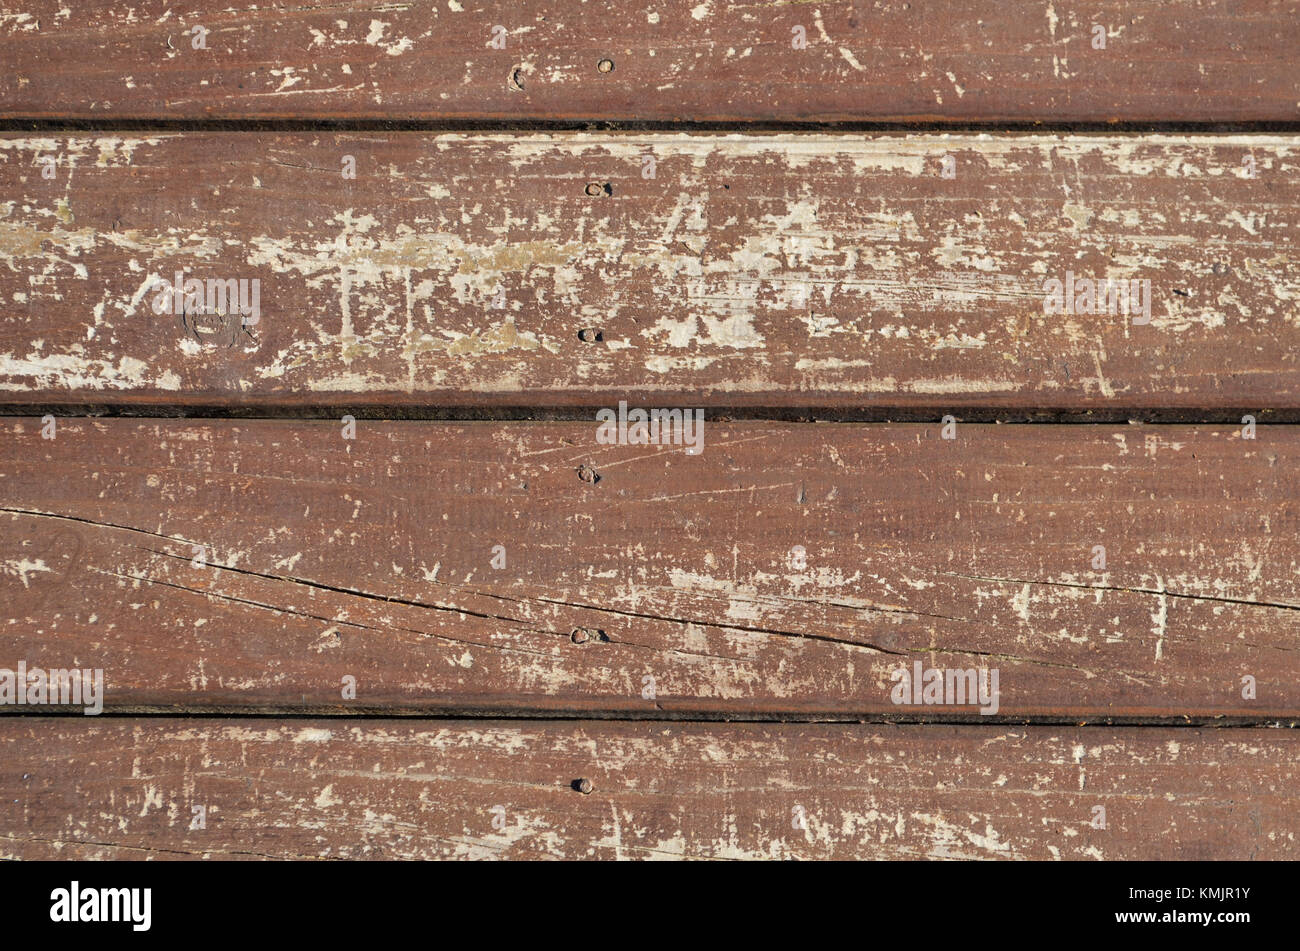 Close up of aged wooden floor boards - Stock Image